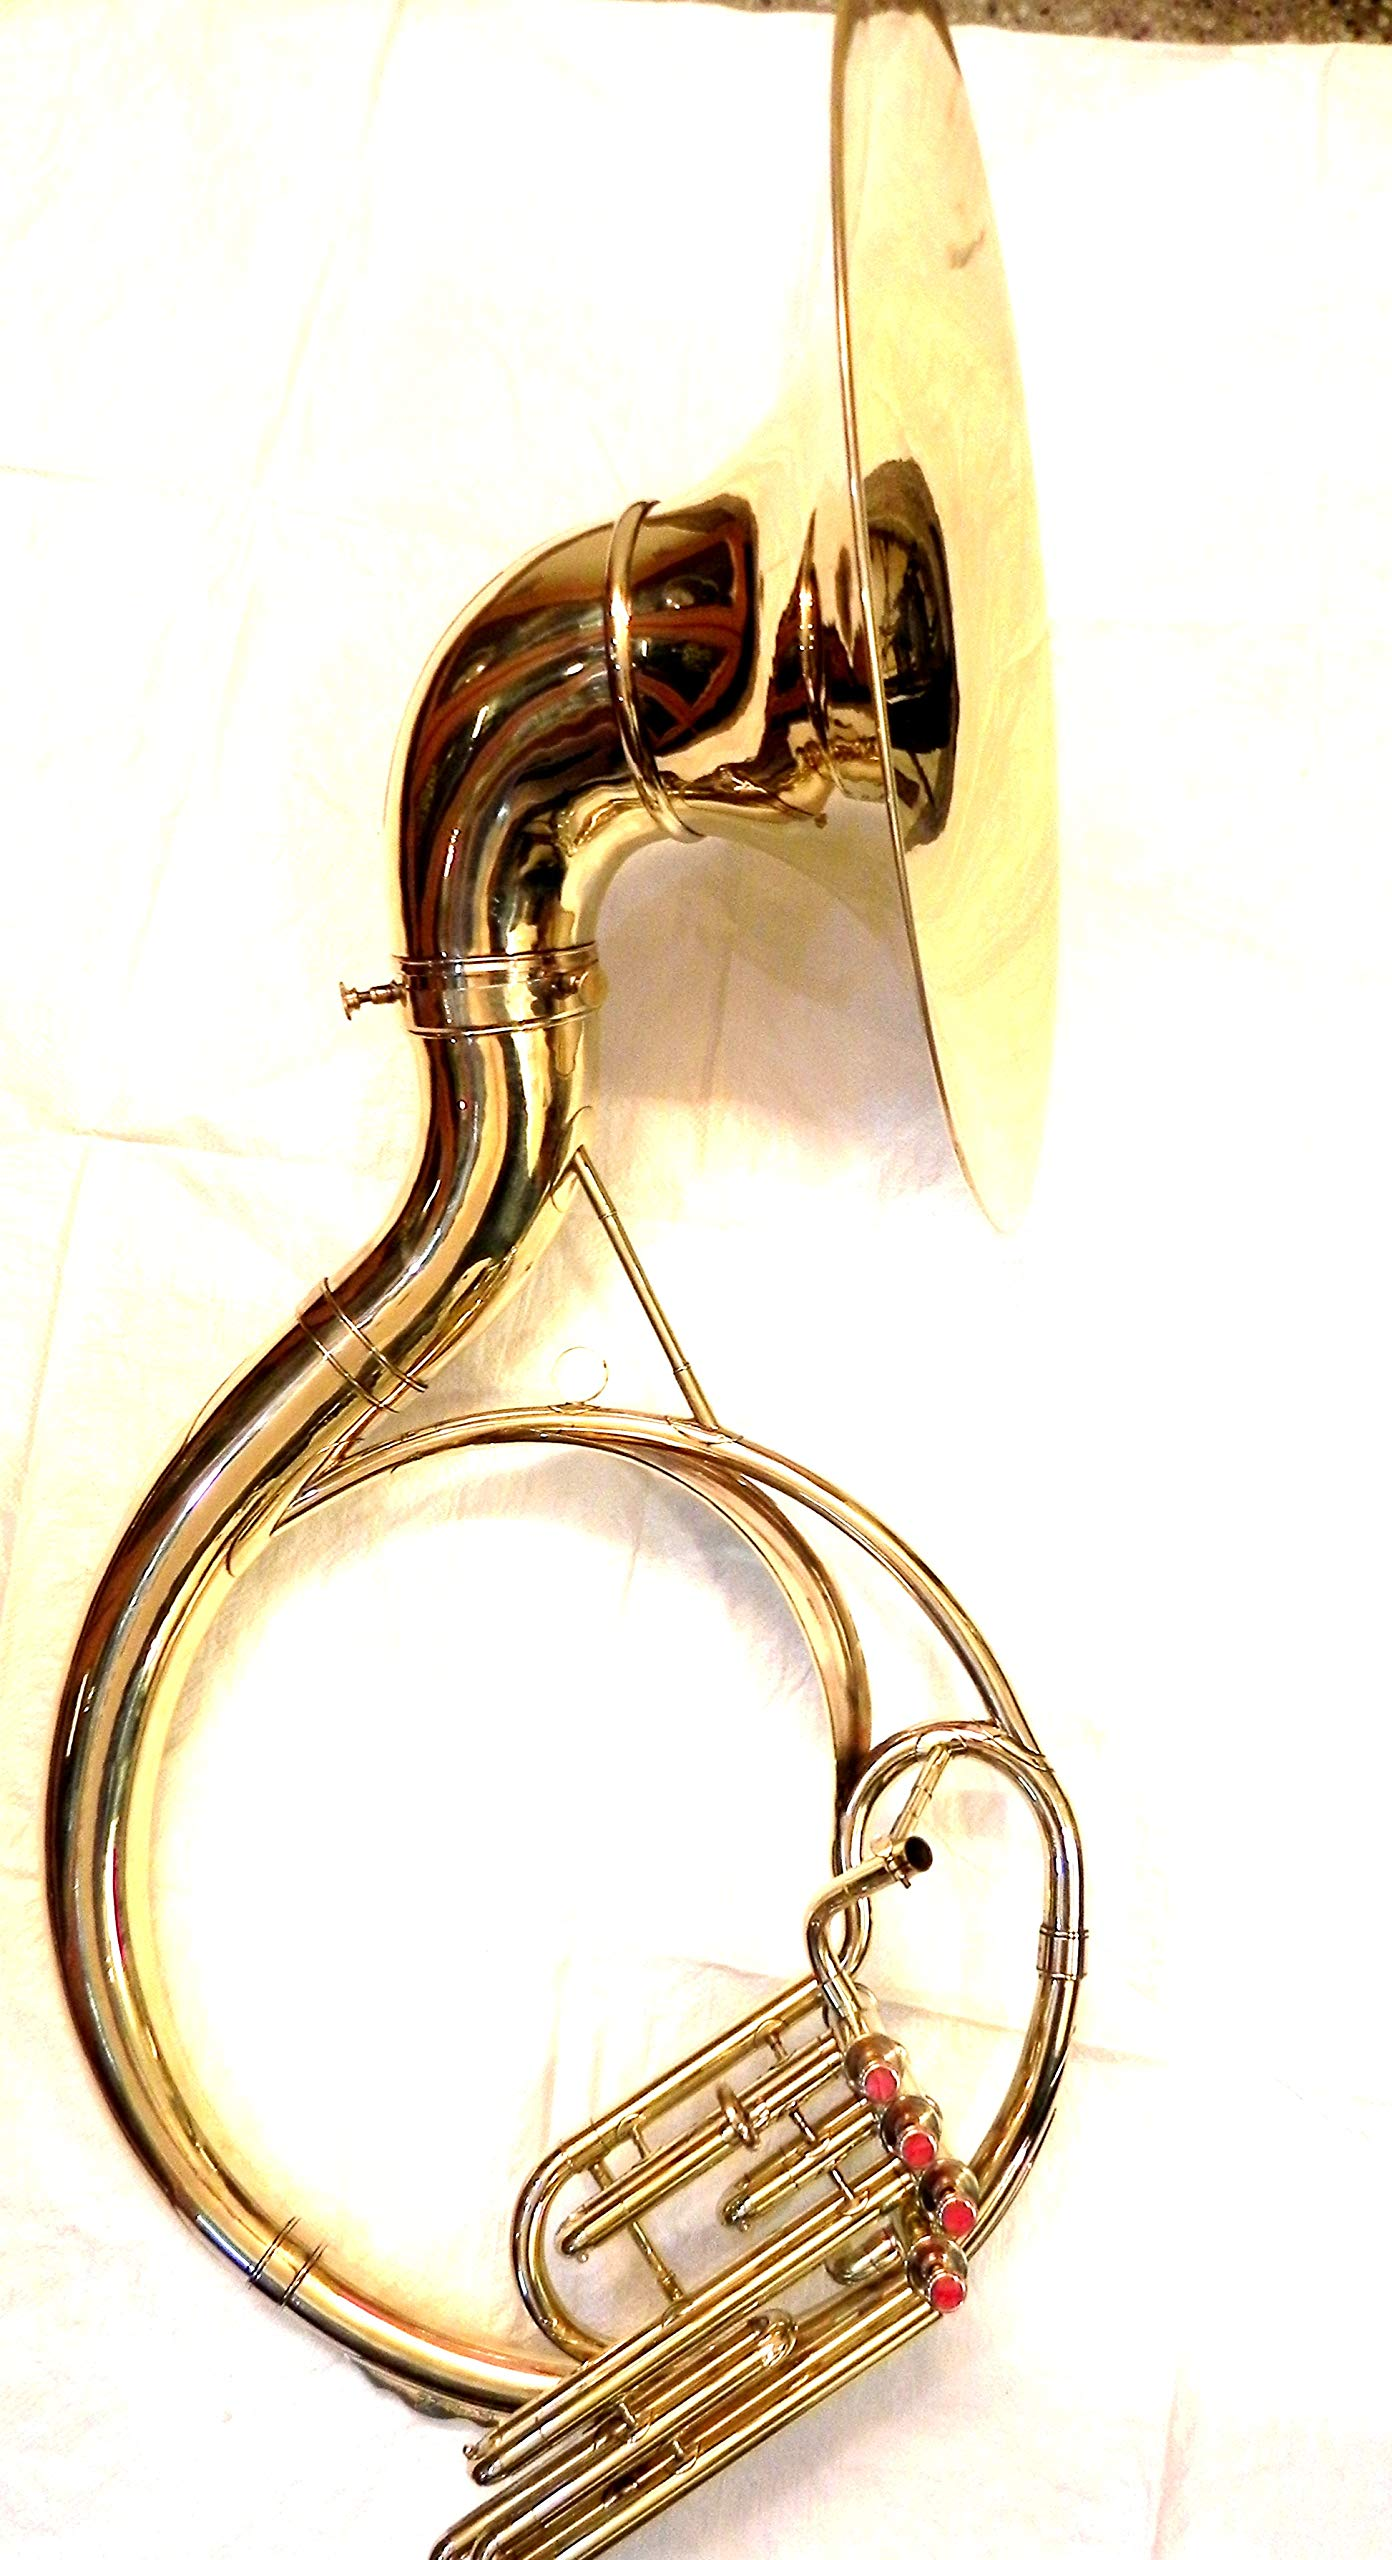 IM INDIAN HANDMADE BRASS FINISH 4 VALVE SOUSAPHONE BRASS MADE TUBA MOUTH PIECE WITH BAG